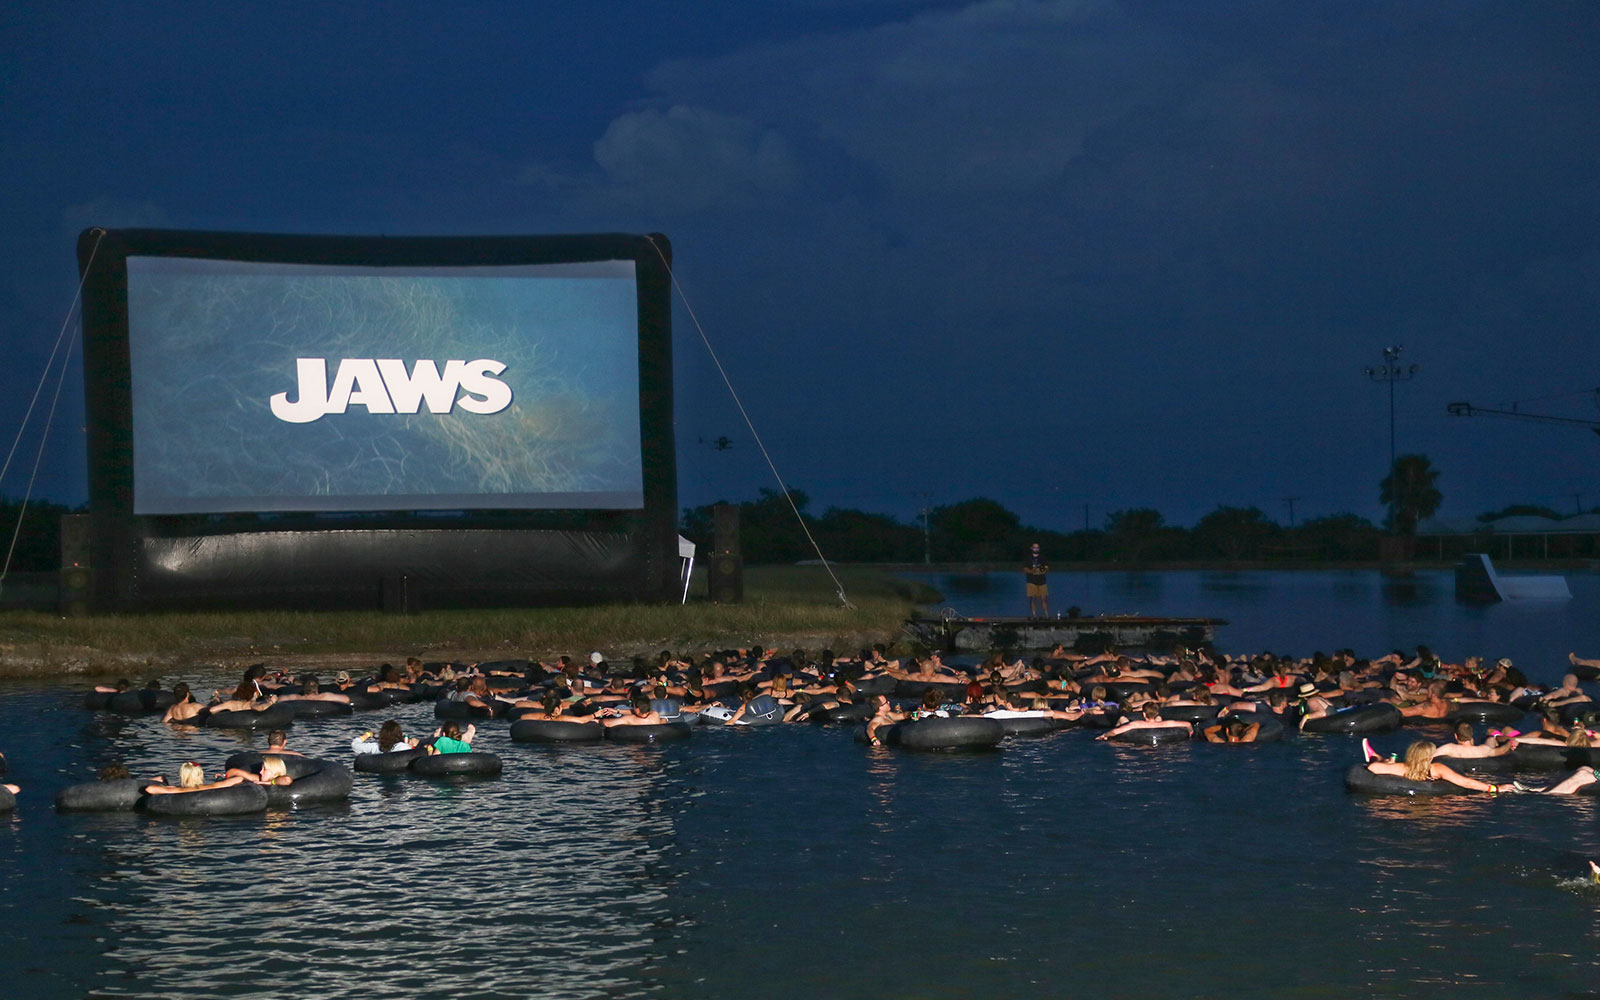 Watch 'JAWS' While Floating on an Innertube in a Lake